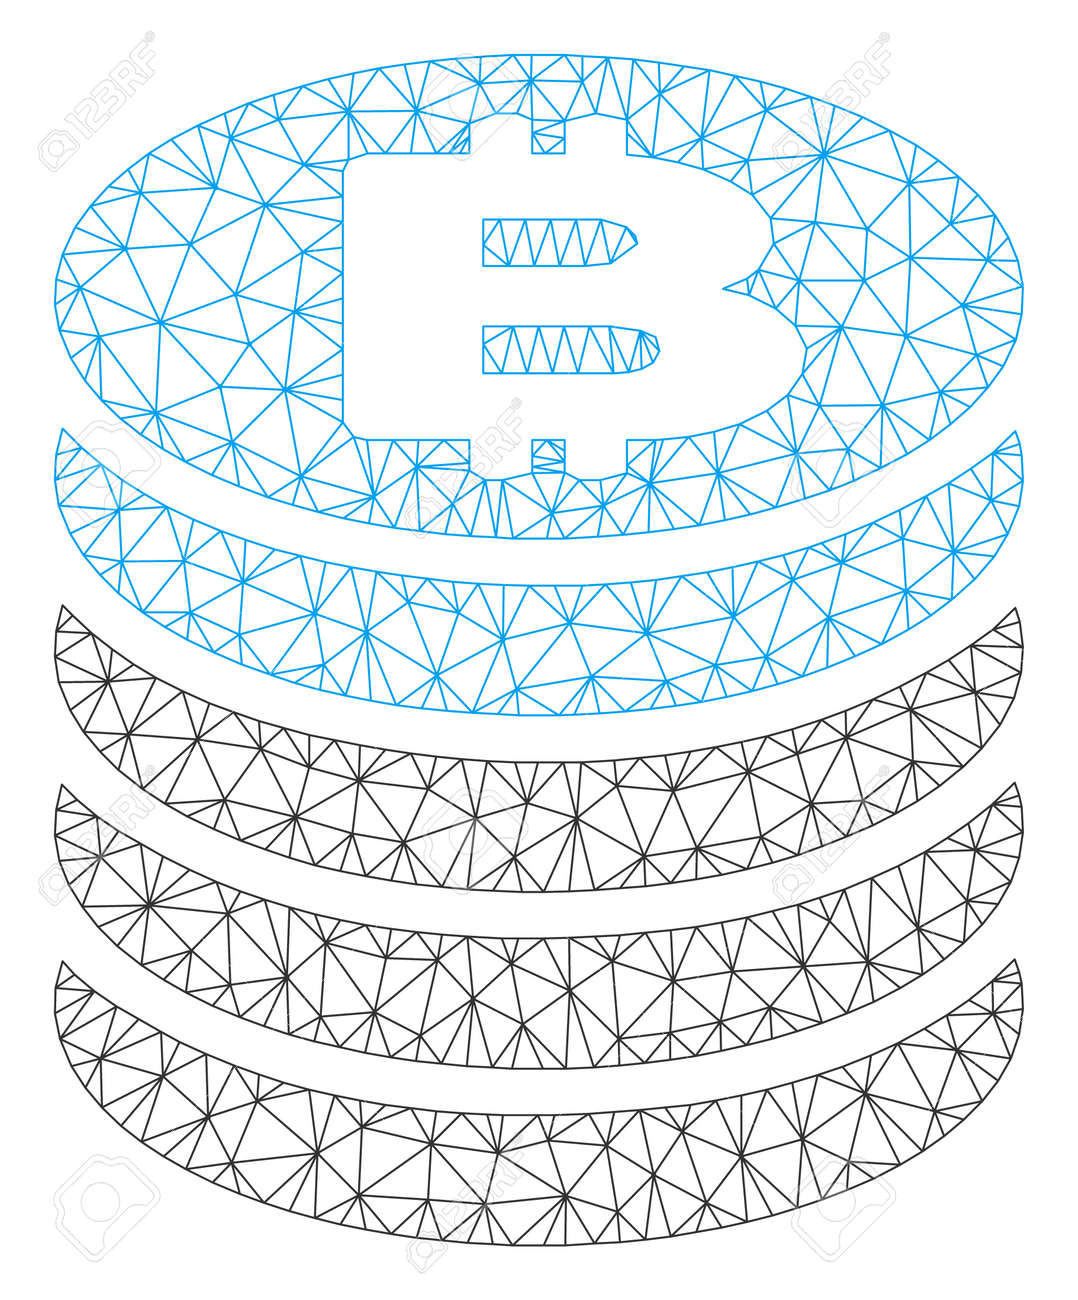 Mesh network coin